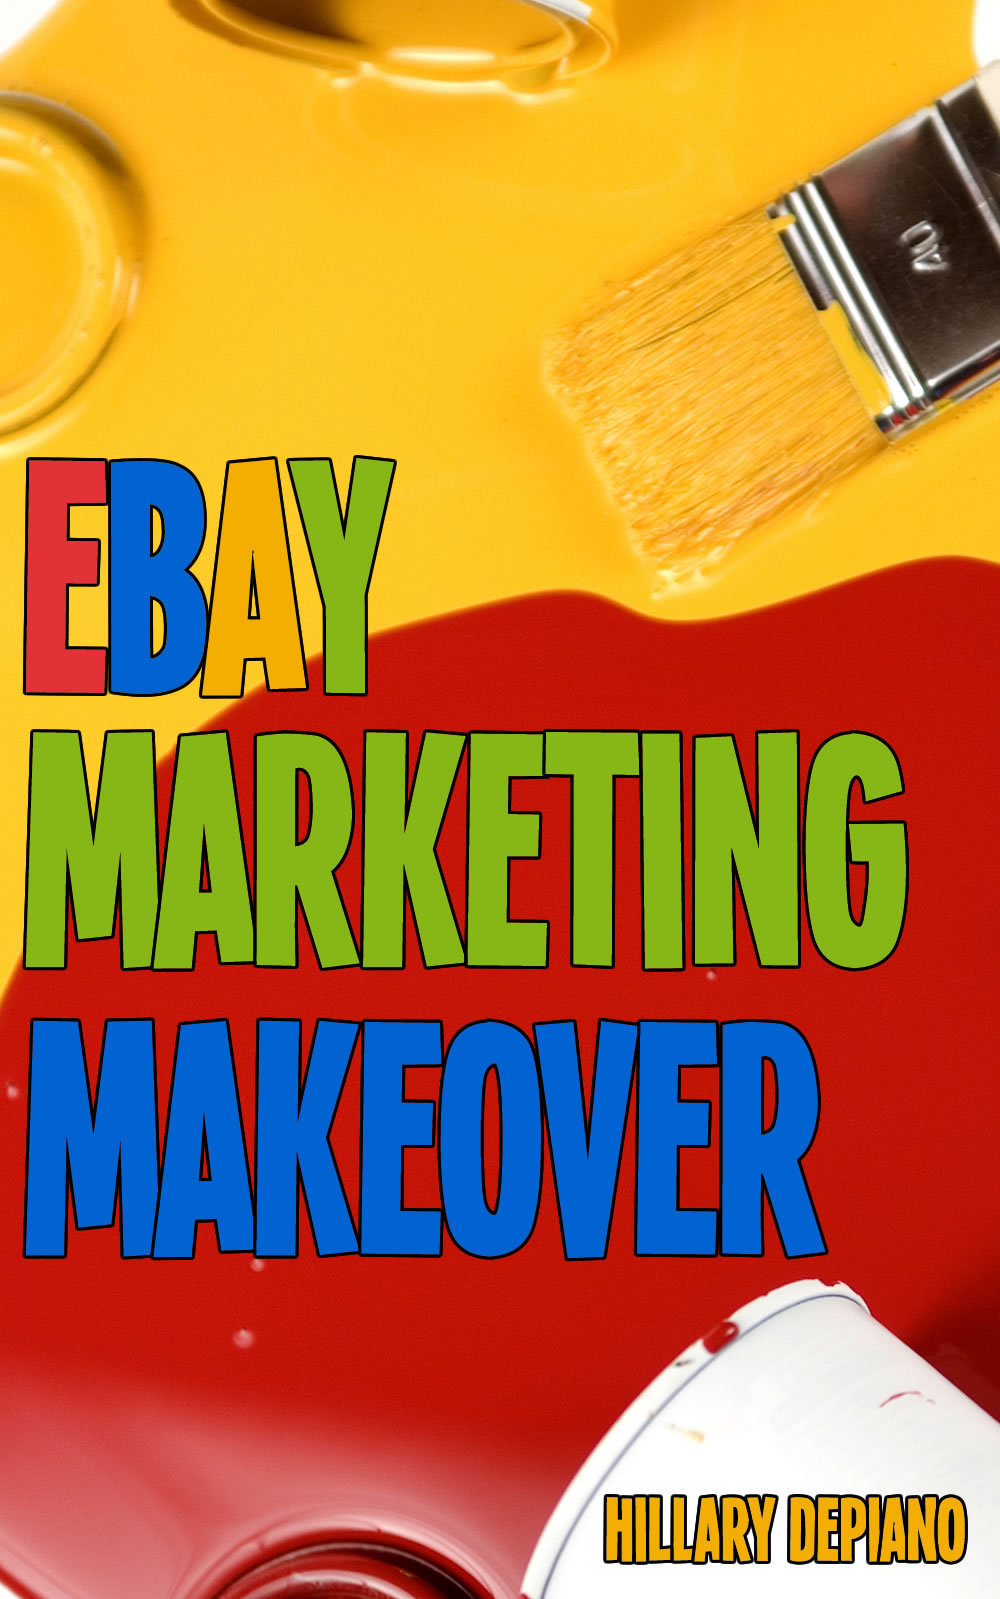 eBay Marketing Makeover: Increase sales and grow traffic to your eBay items  by  encouraging word of mouth, focusing on your ideal buyers, and optimizing your selling for search and mobile by Hillary DePiano